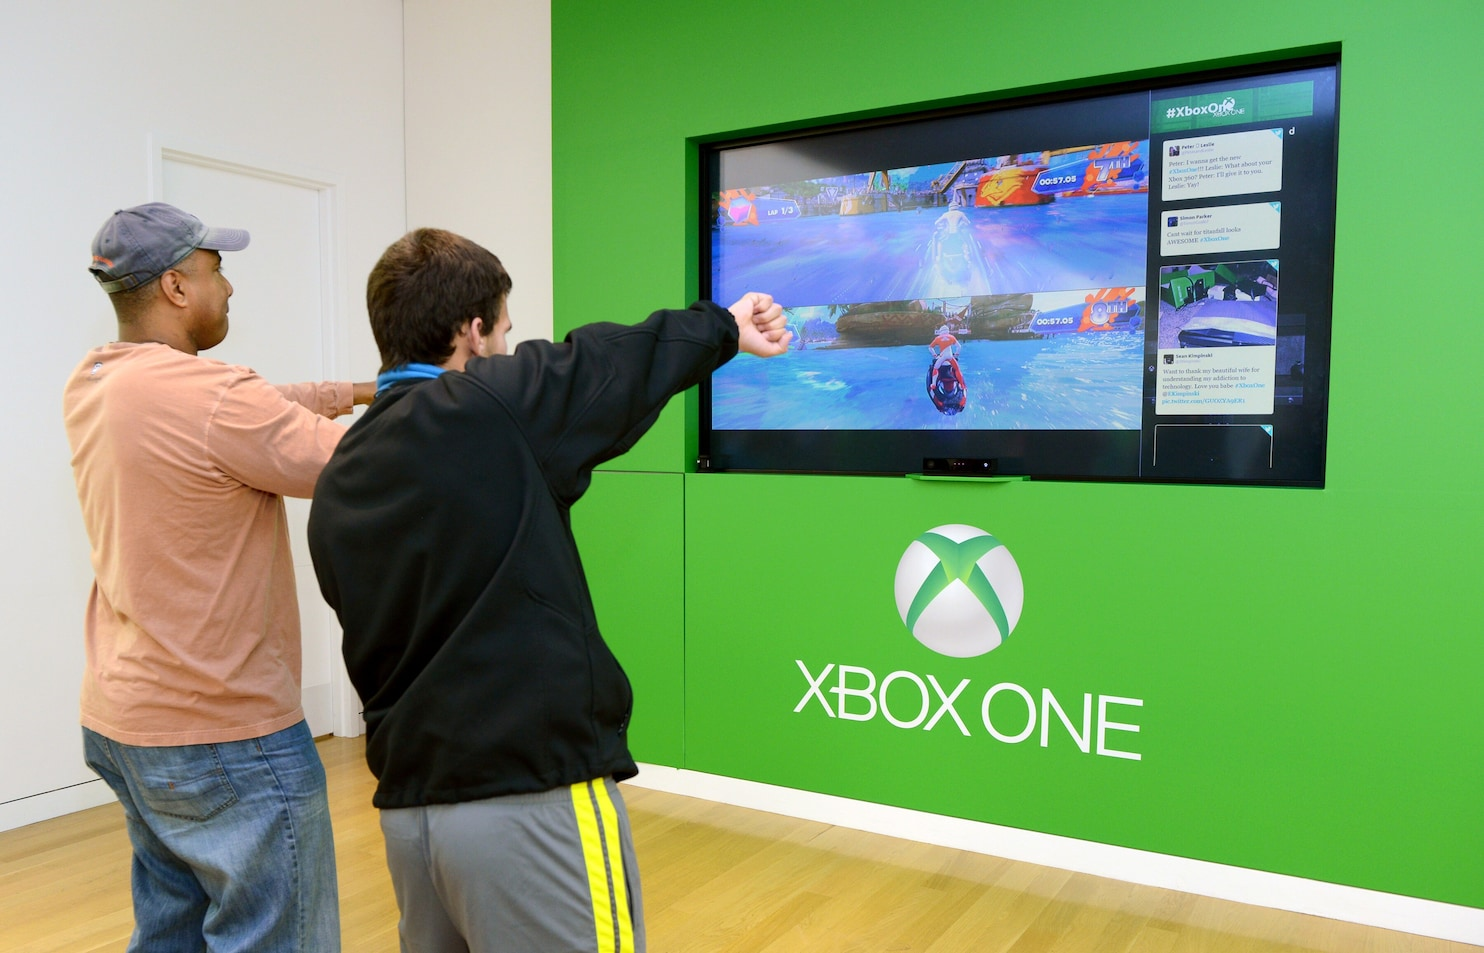 Xbox One Matches PlayStation 4 In Launch Day Sales Users